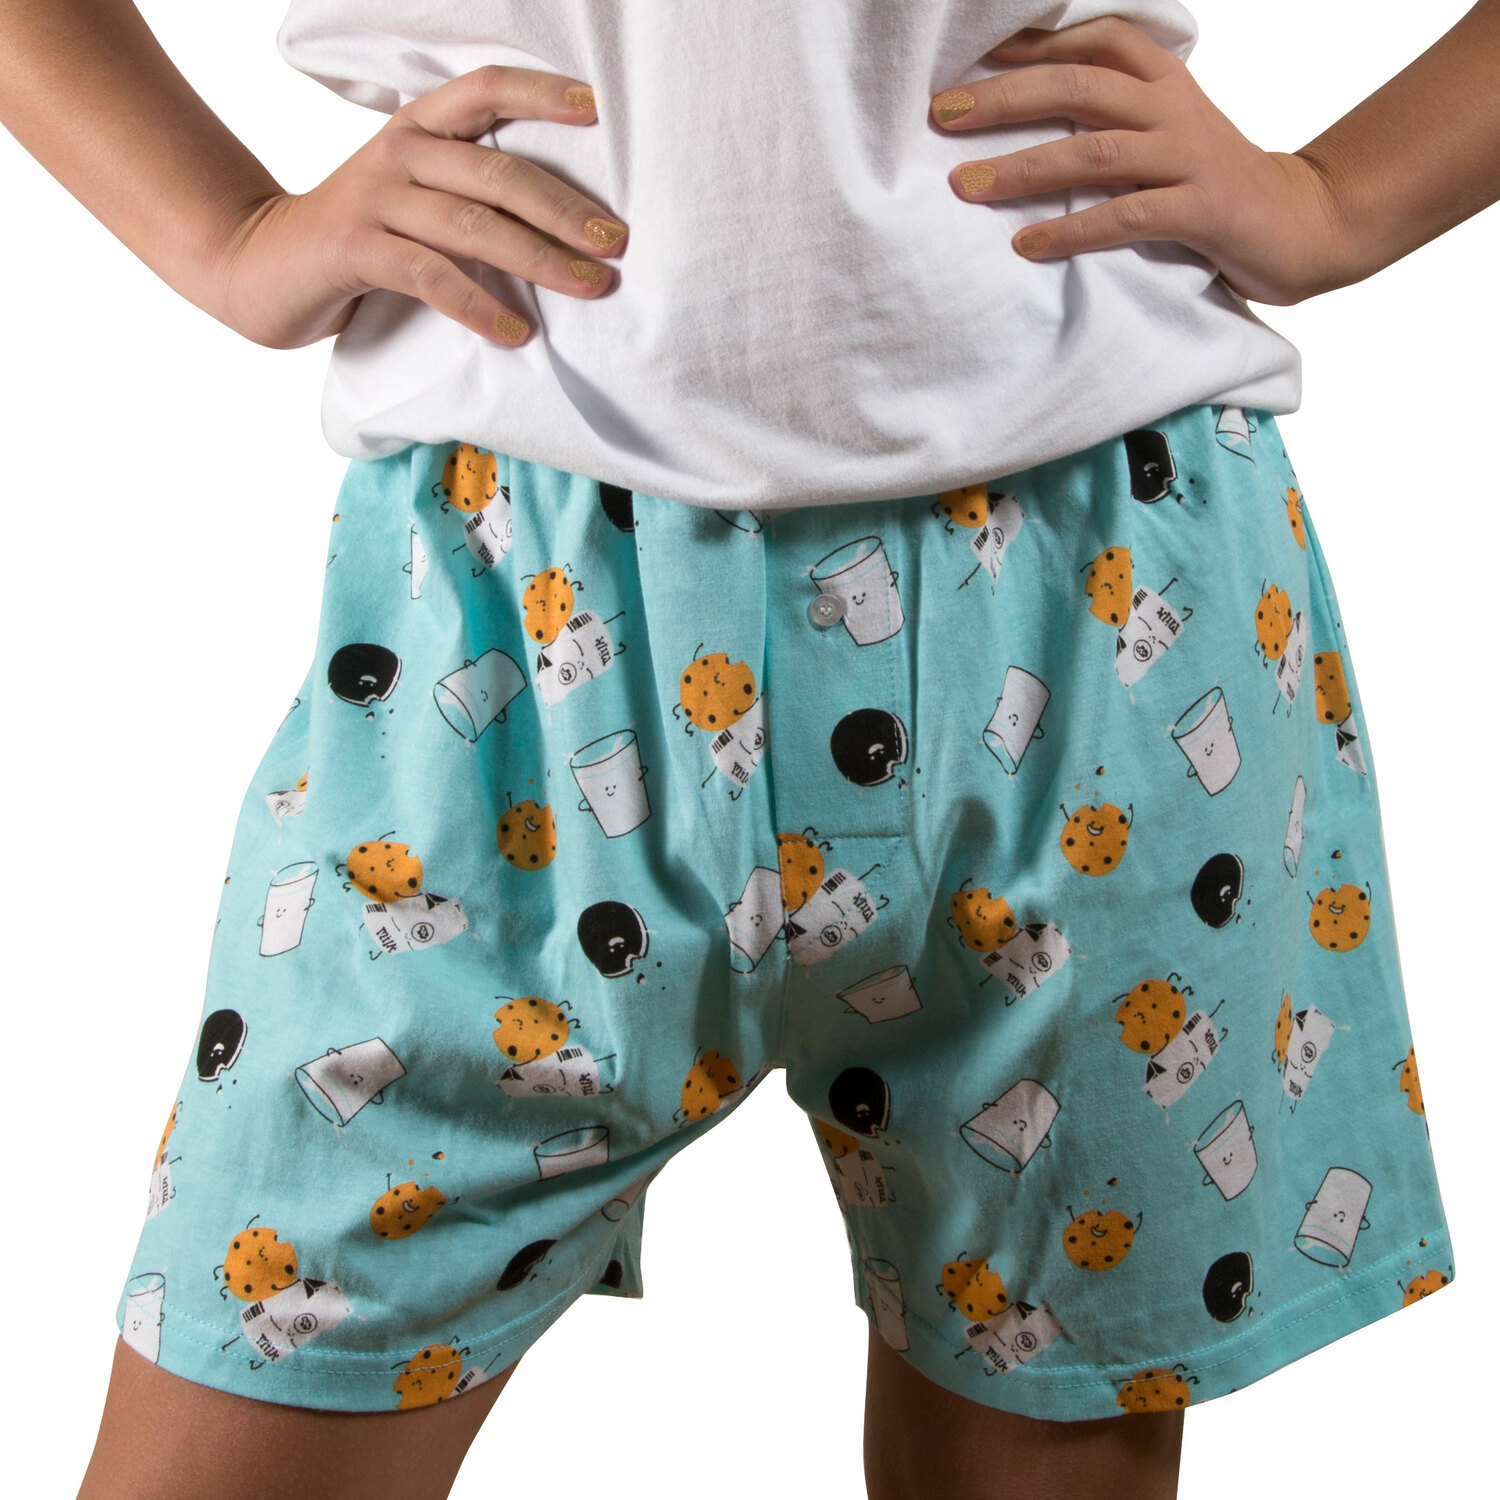 Milk and Cookies by Late Night Snacks - Milk and Cookies - XS Light Blue Unisex Boxers